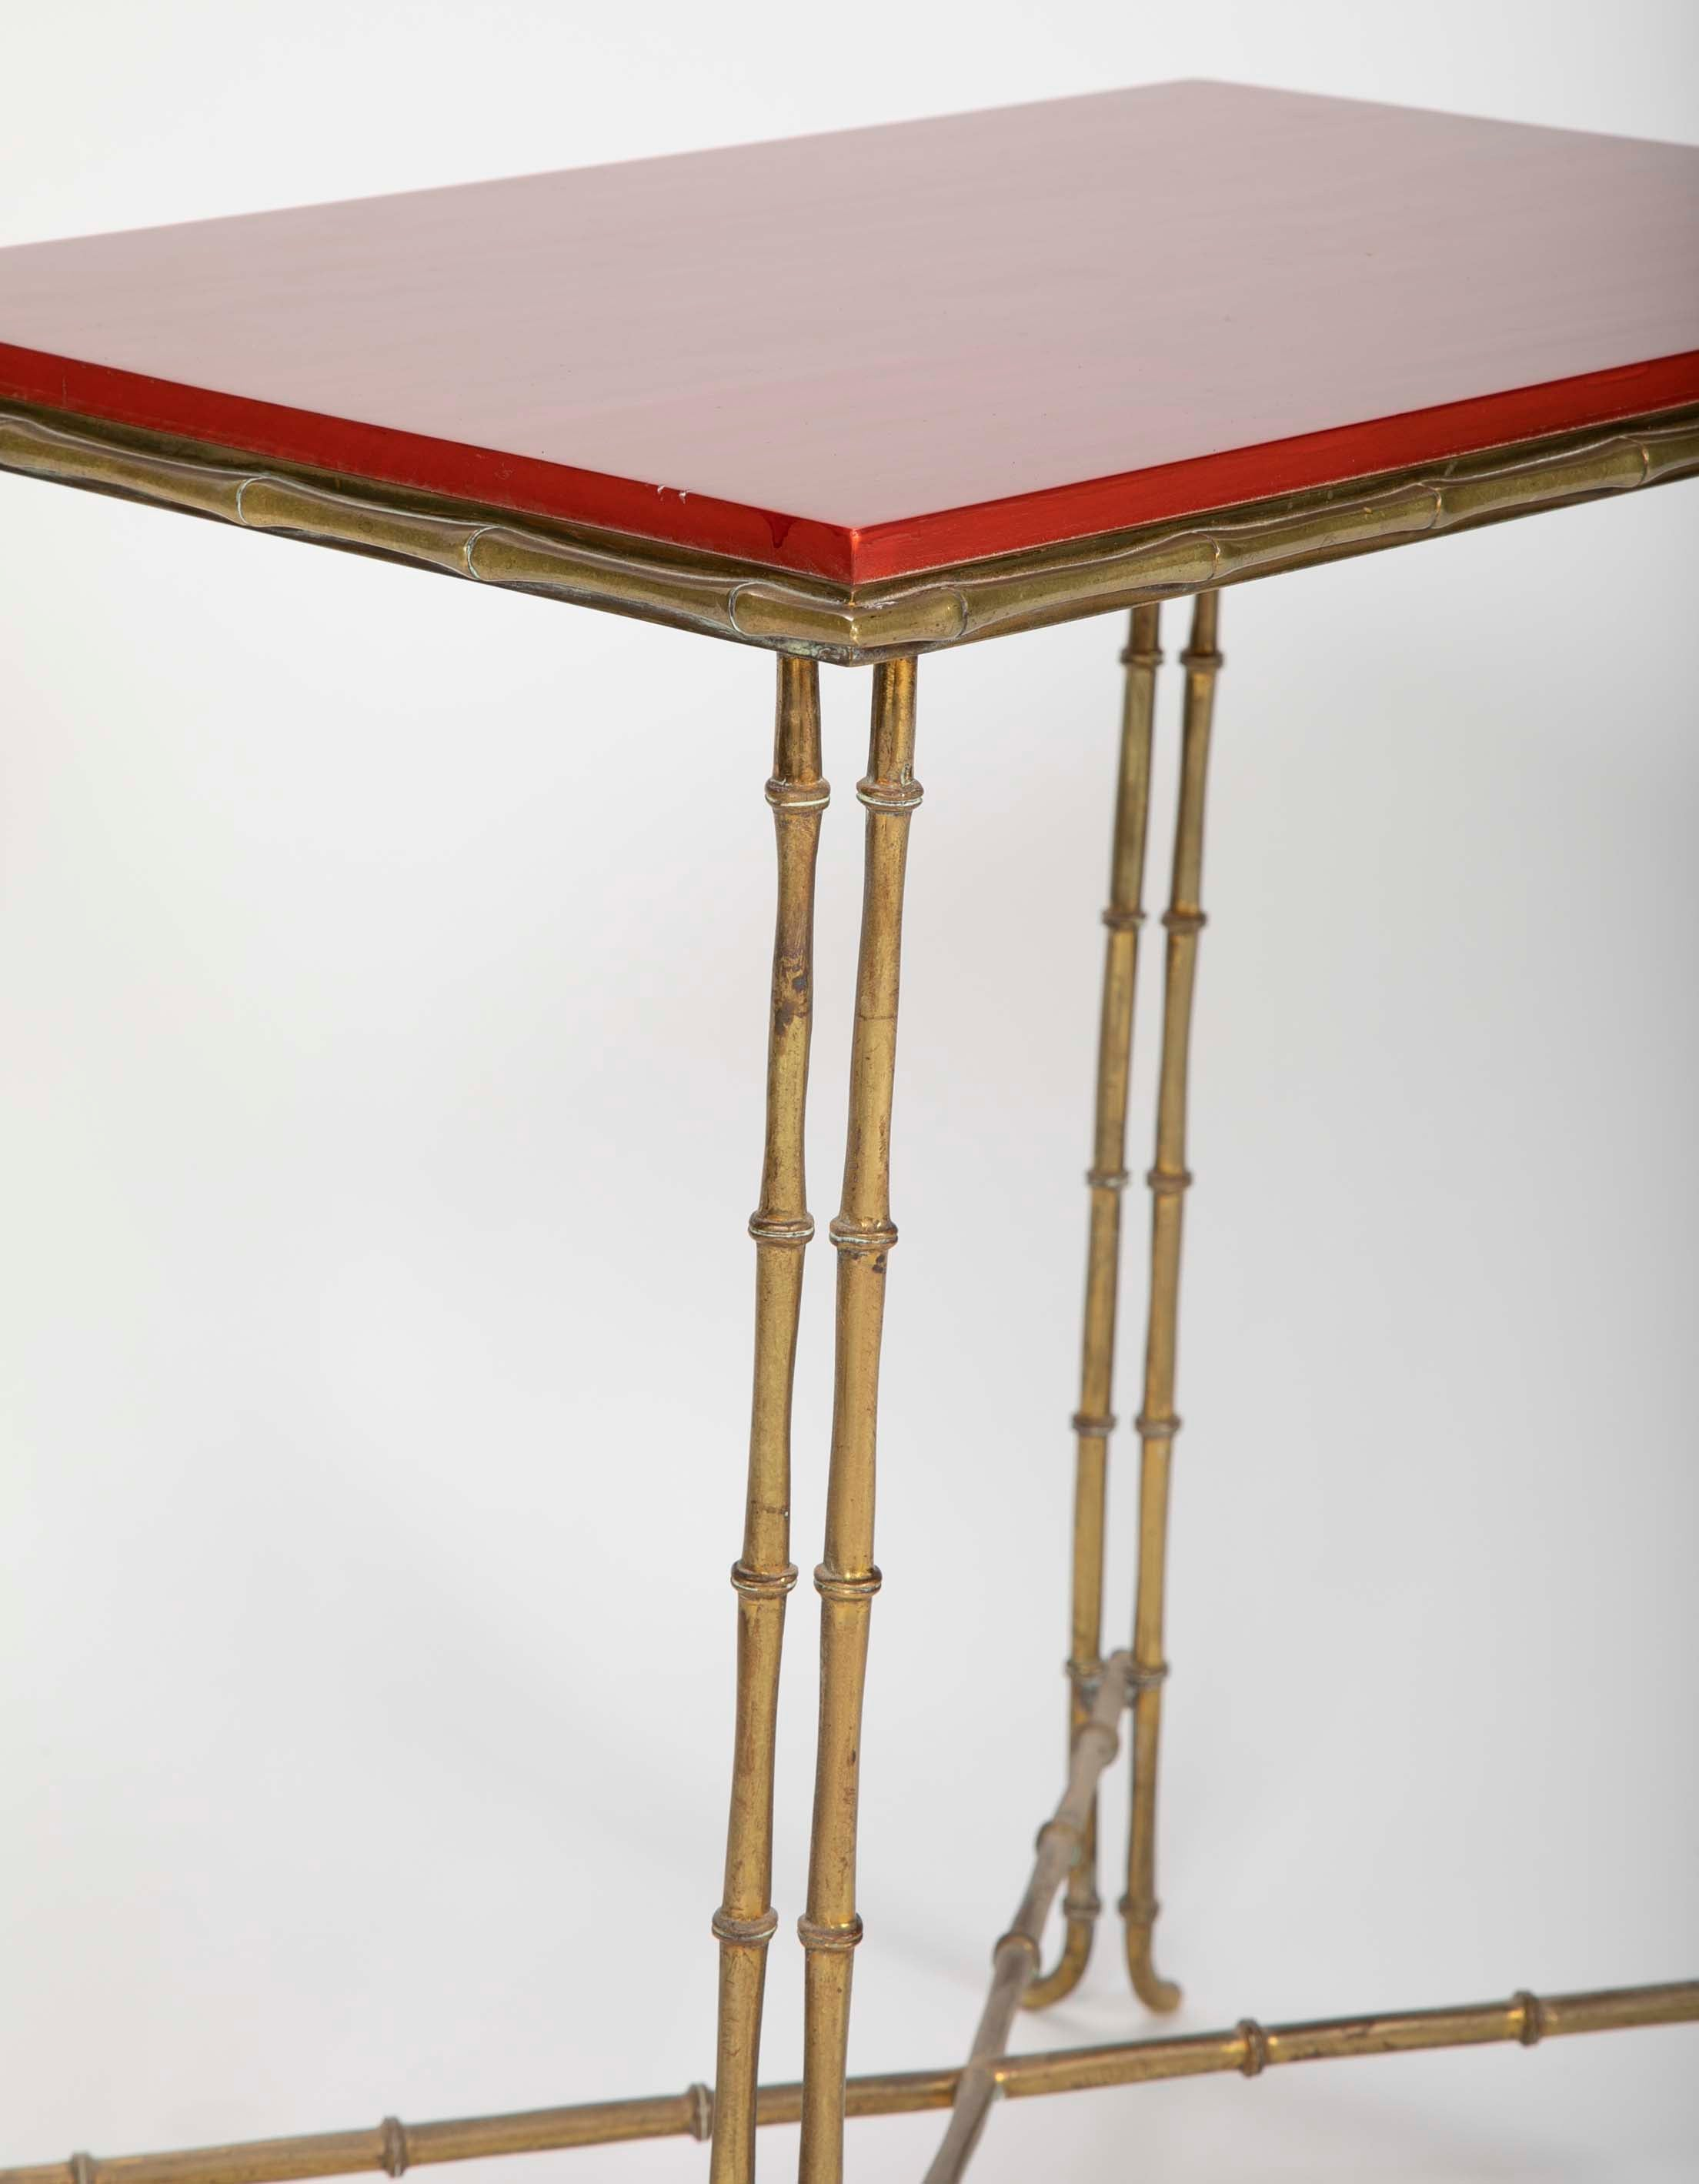 A Brass Bamboo Form Cocktail Table by Bagues with Red Lacquered Wood Top